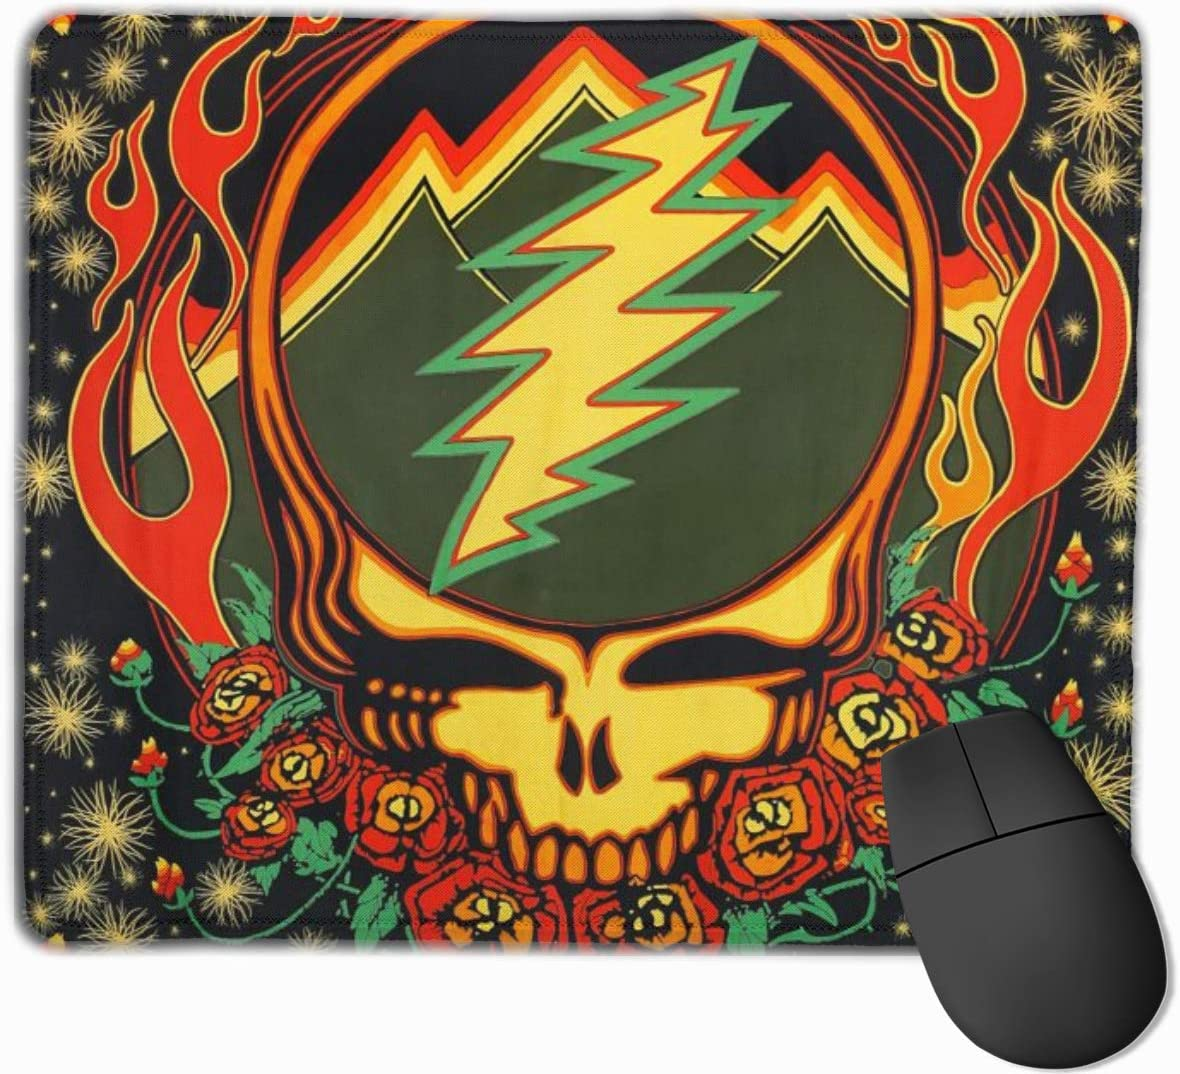 Grate Ful Skull Gaming Mouse Pad, Anti Slip Natural Rubber Mouse Mat for Desktops, Computer, Pc and Laptops Cool Mousepad for Working or Game - Grate-ful Dead 7.1x8.7 inches/11.8x9.85 inches